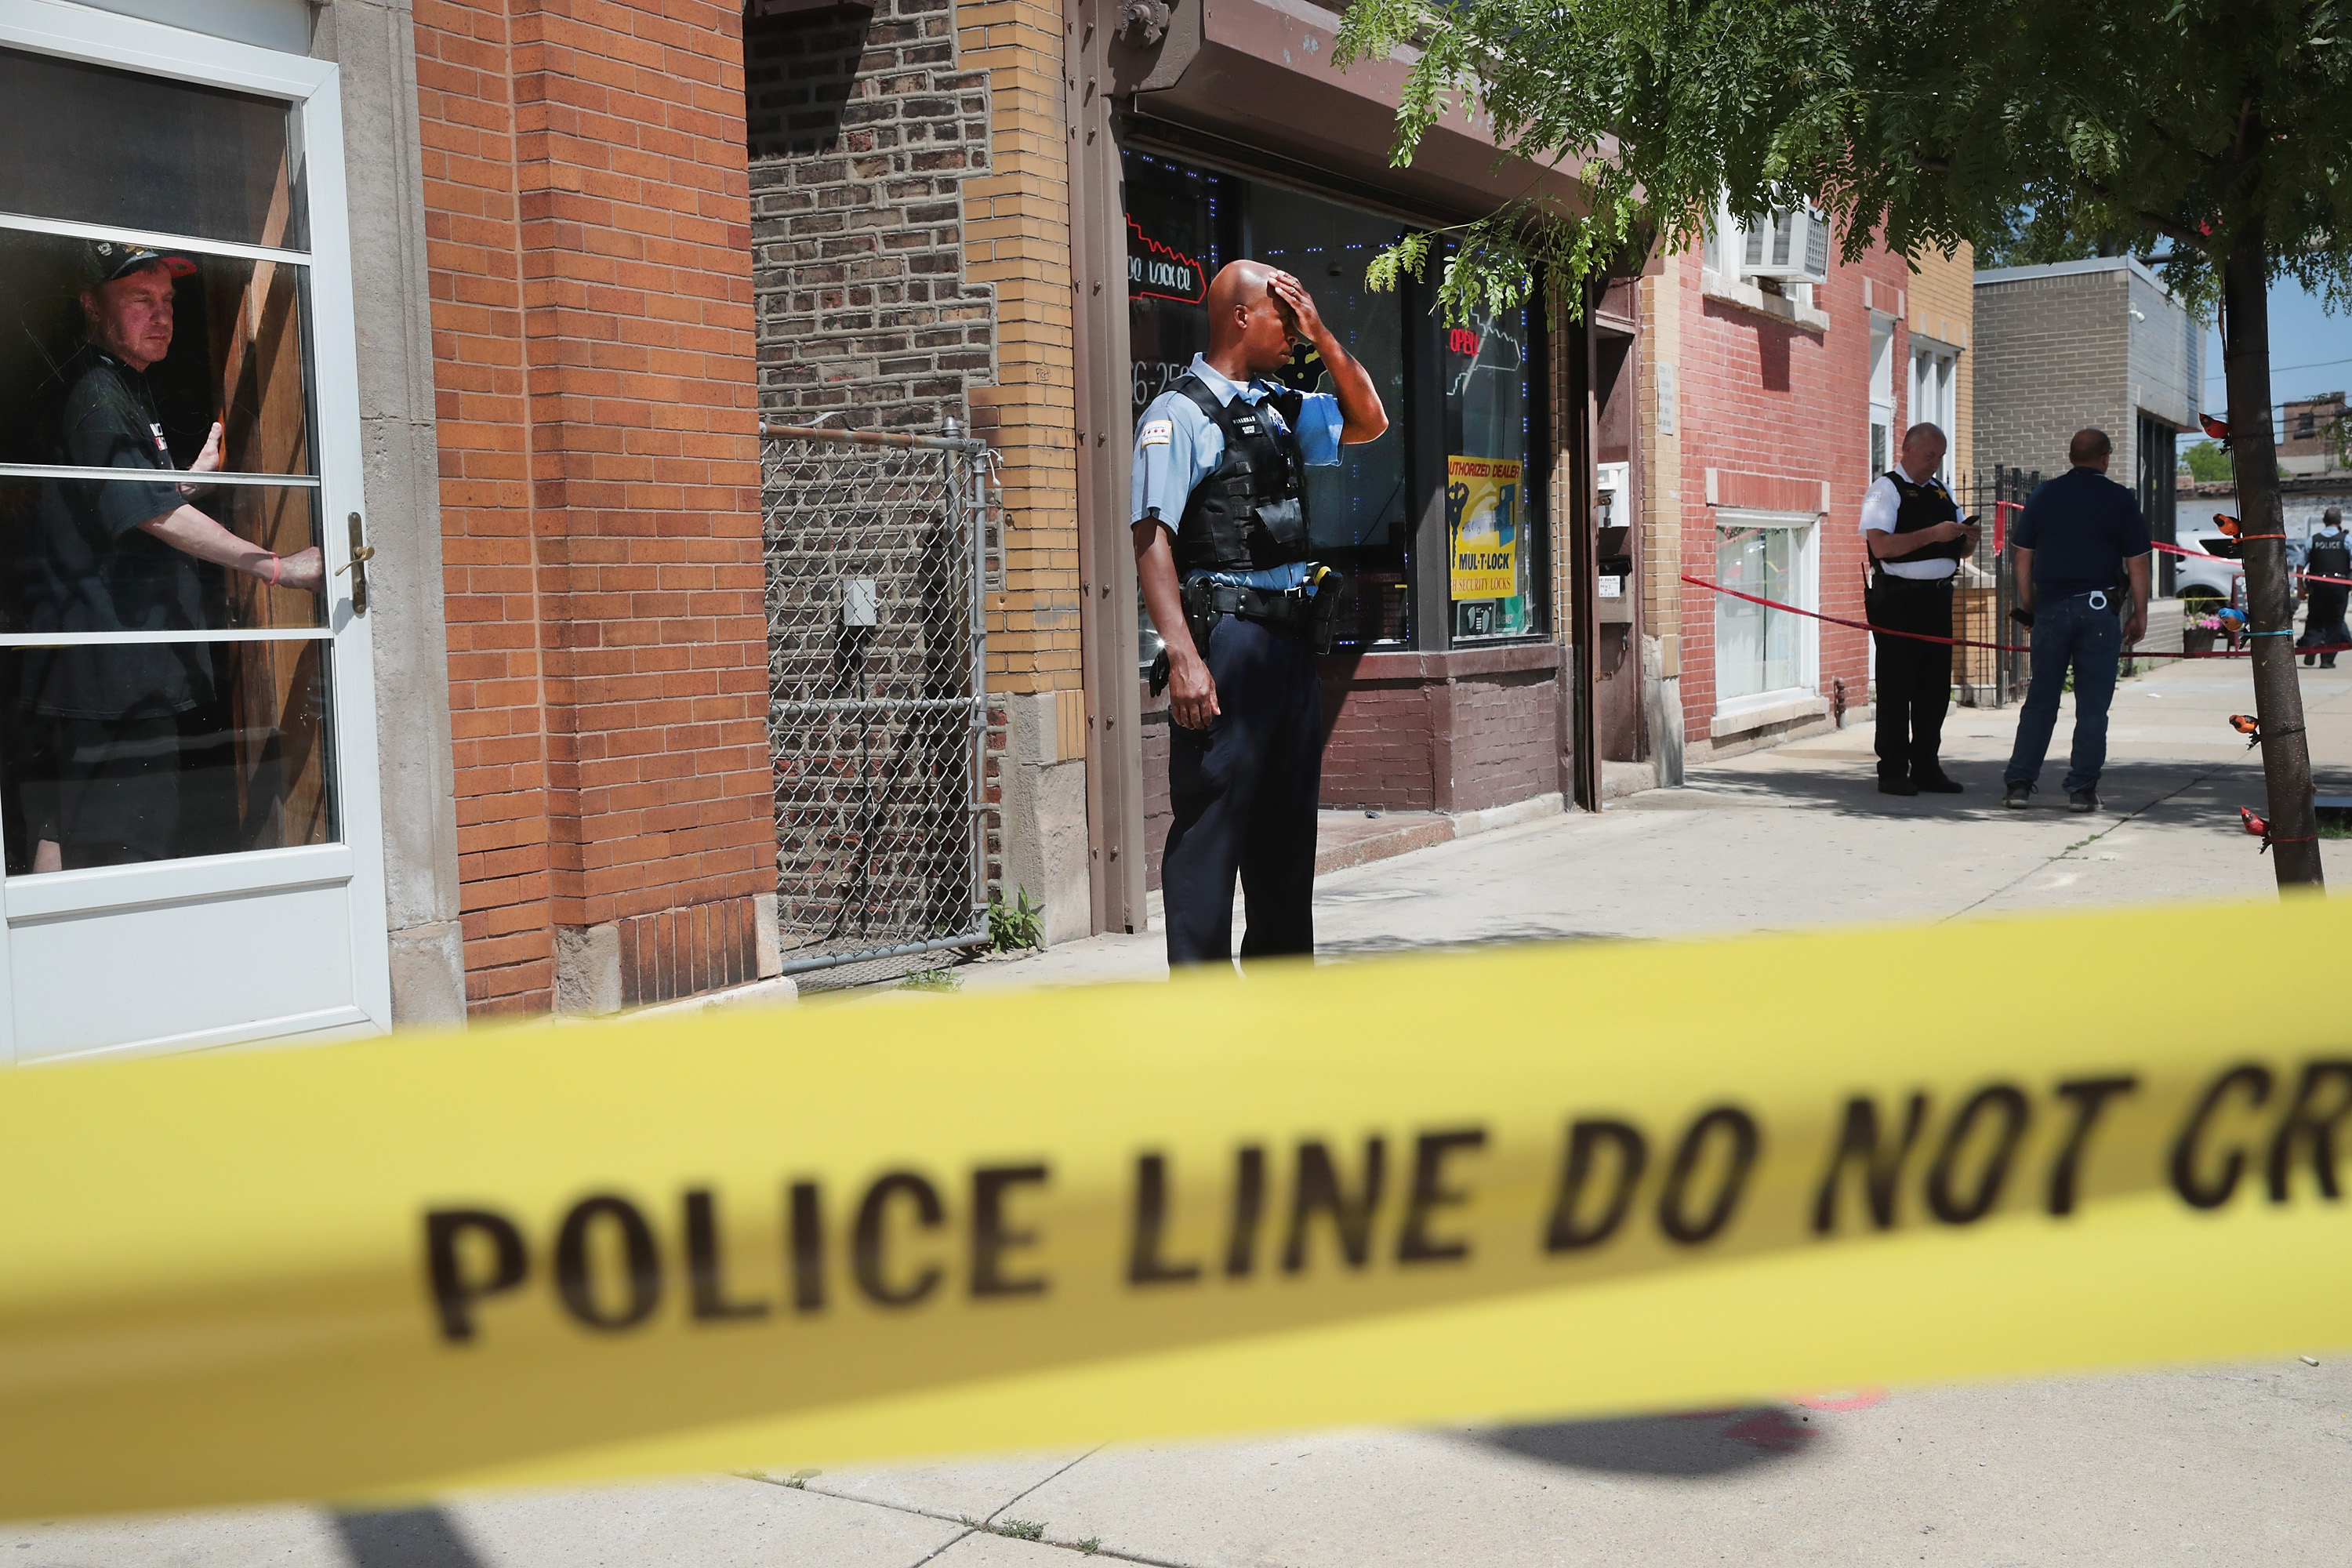 Police investigate a crime scene after two people were shot on the near Westside on June 15, 2016 in Chicago, Illinois. (Photo by Scott Olson/Getty Images)